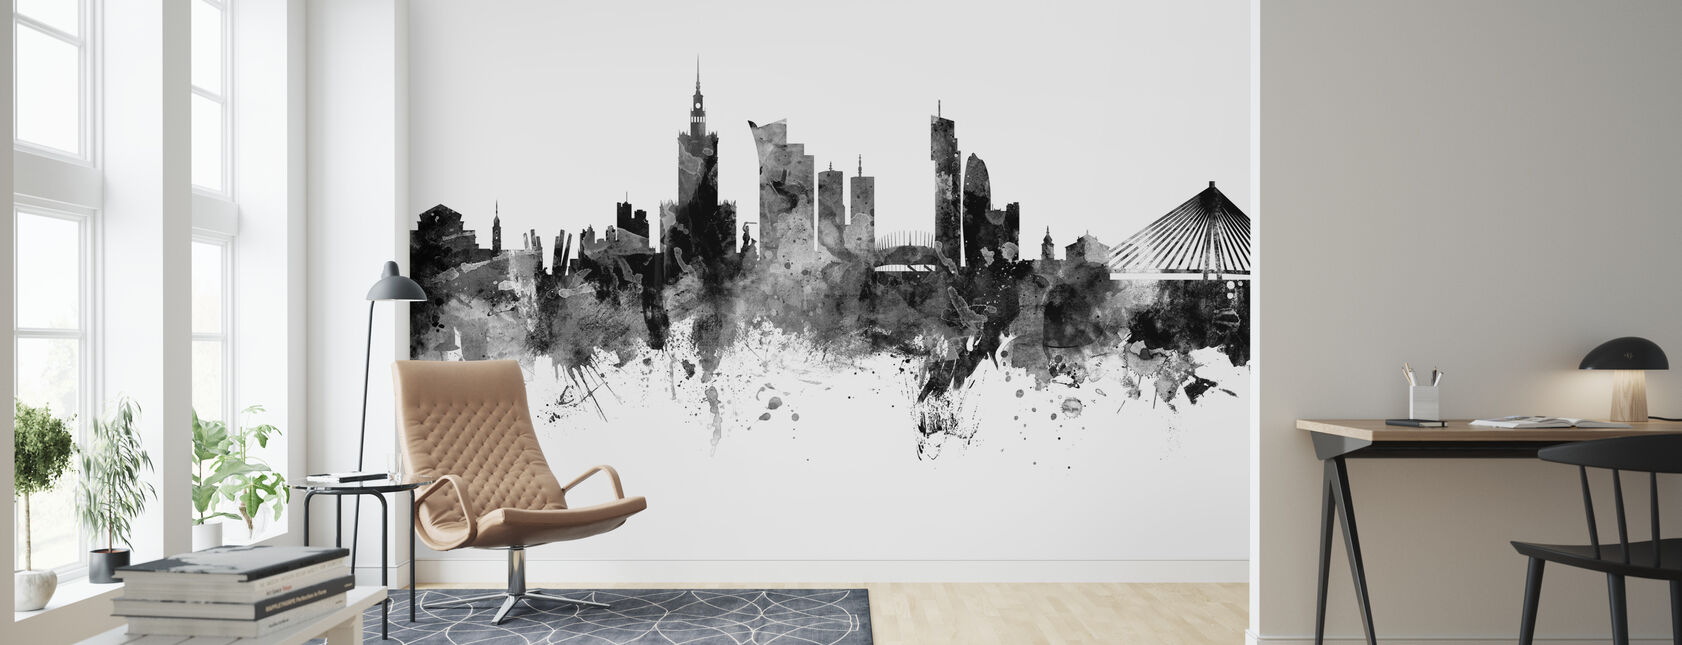 Warsaw Skyline, black and white - Wallpaper - Living Room